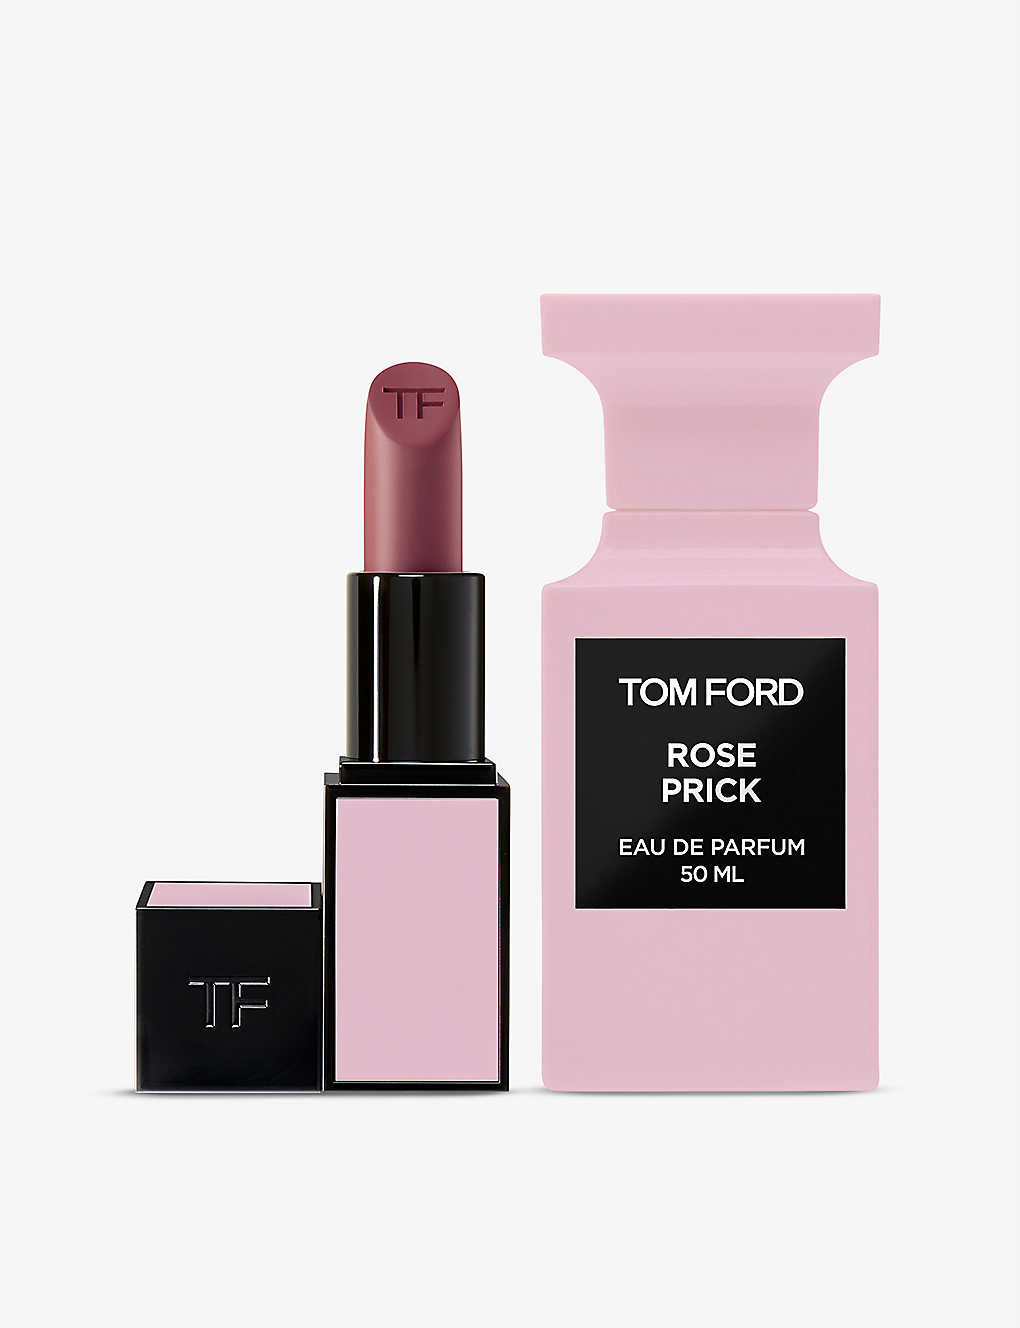 TOM FORD: Rose Prick collection